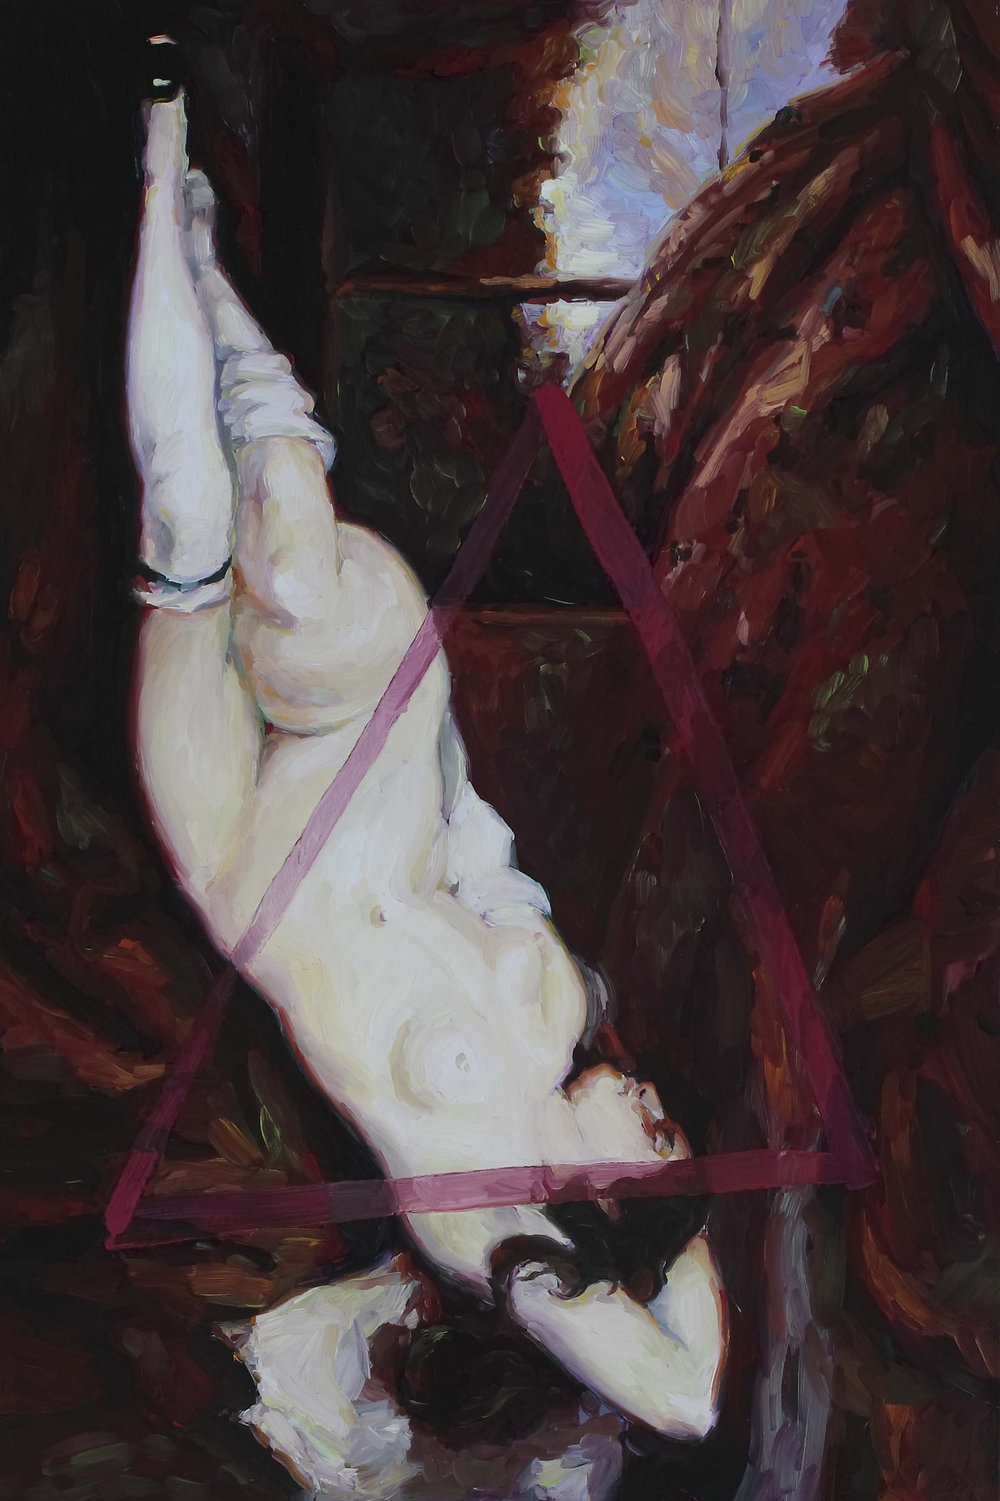 Inverted Woman of the Sort, oil on board 60 x 40 cm, 2008.